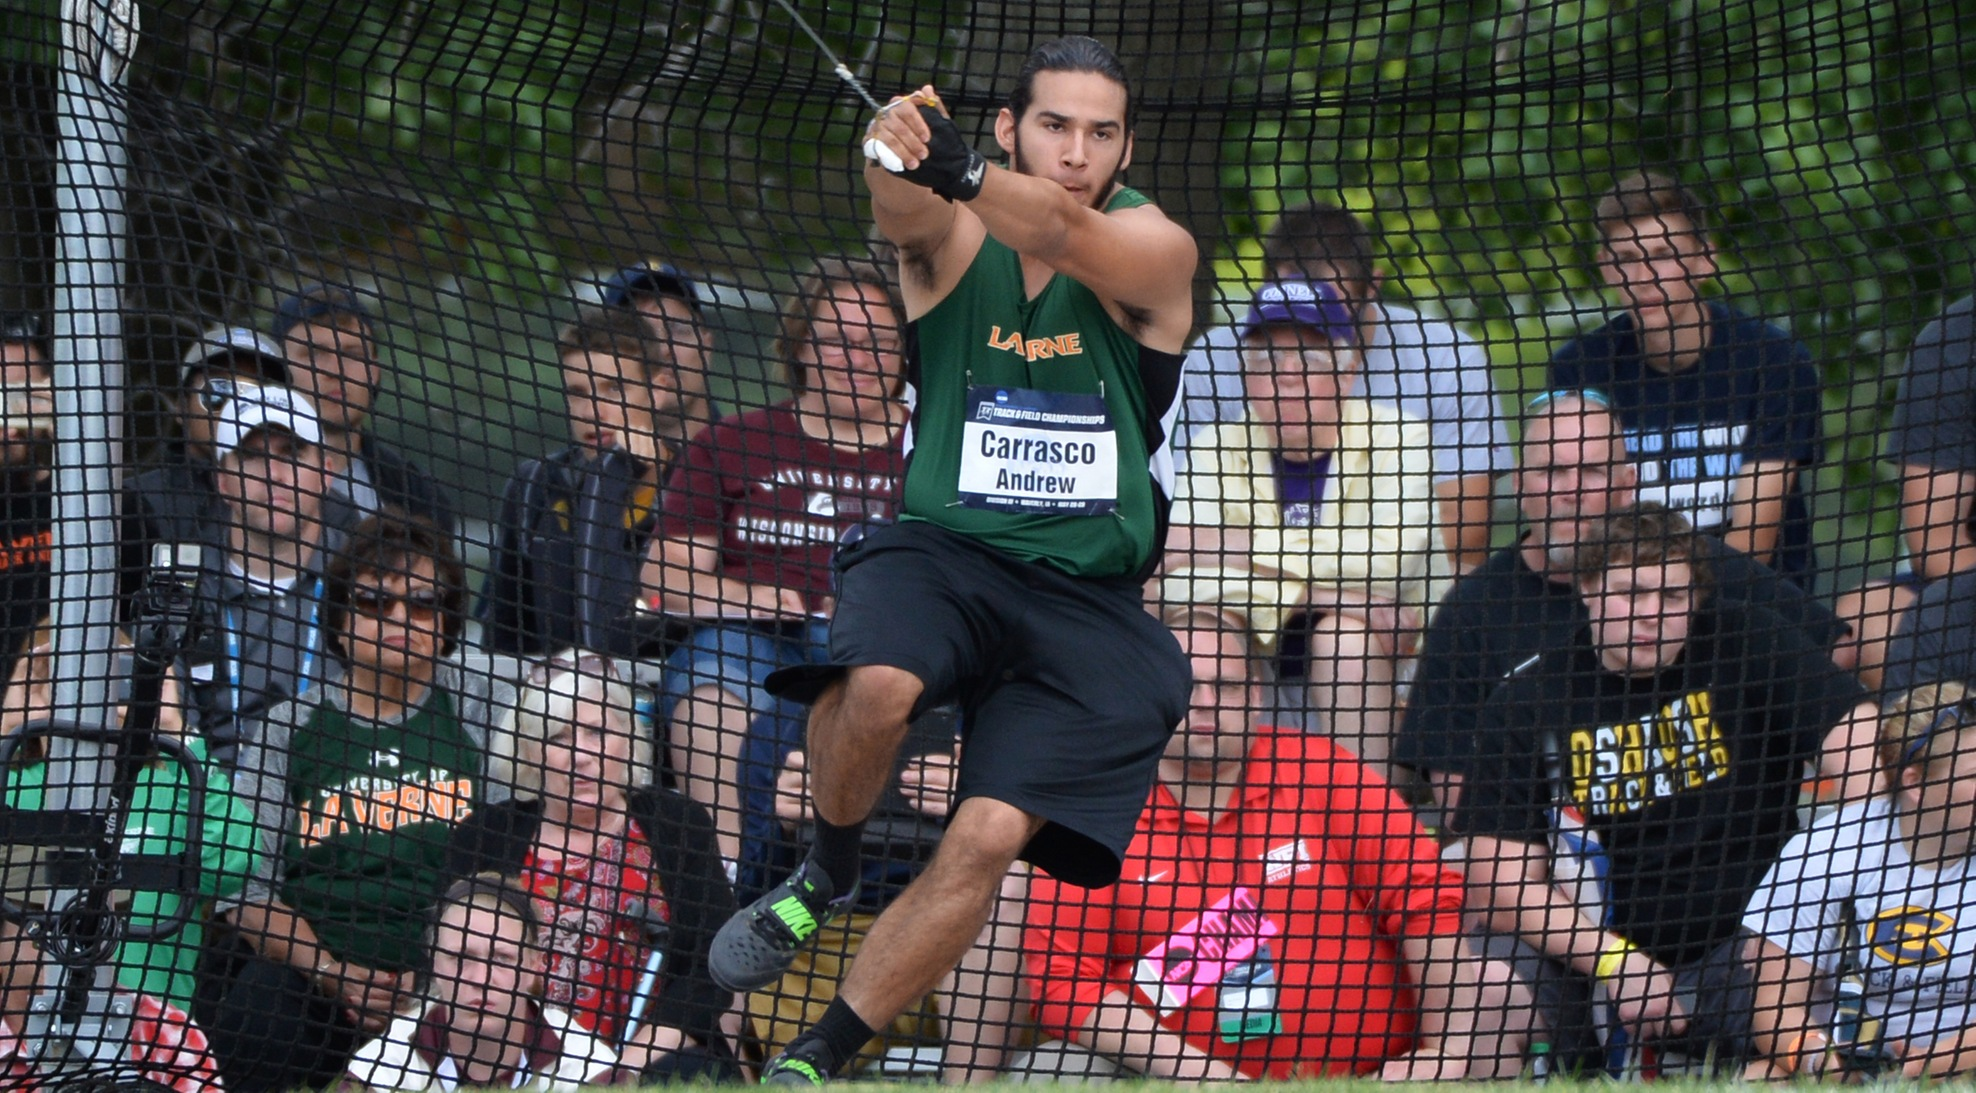 Carrasco wins Hammer at Rossi Relays